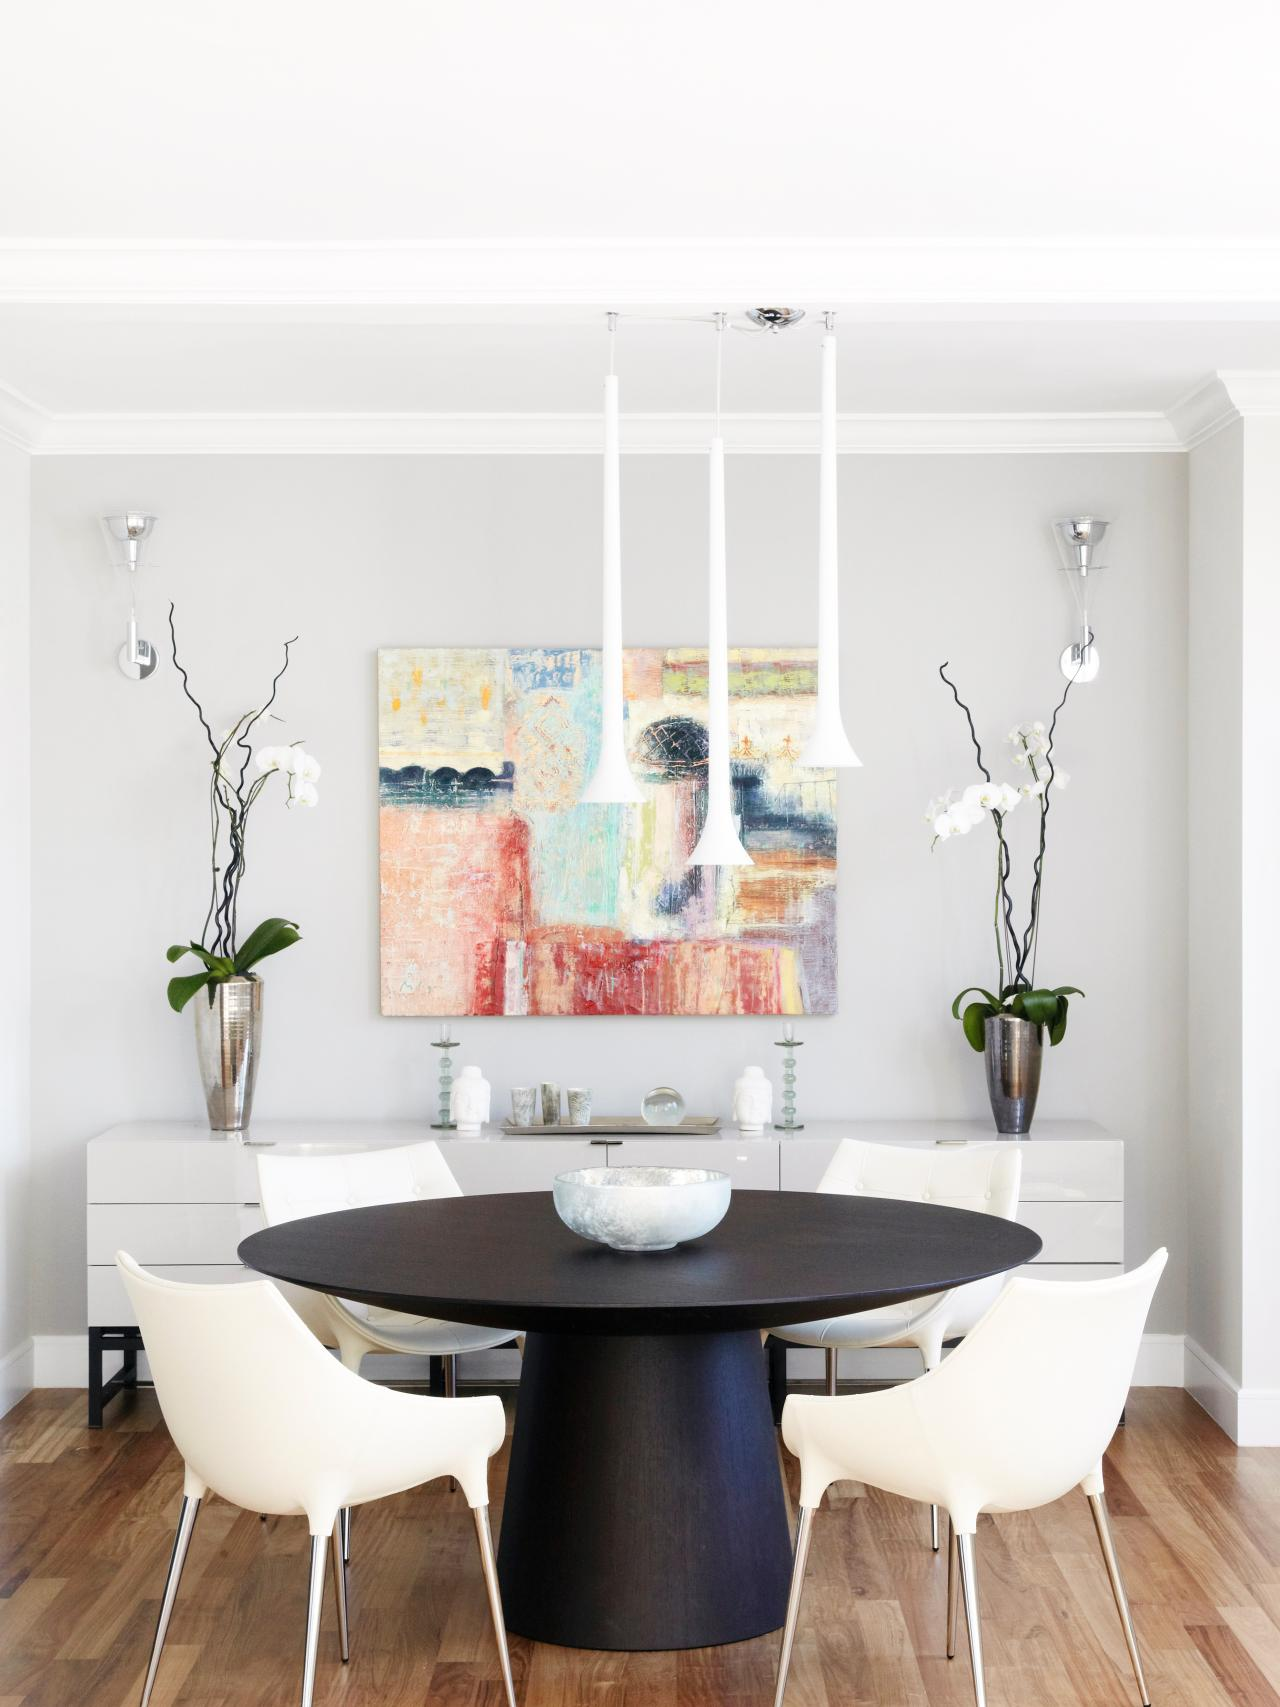 Photos hgtv for Wall art for dining room contemporary